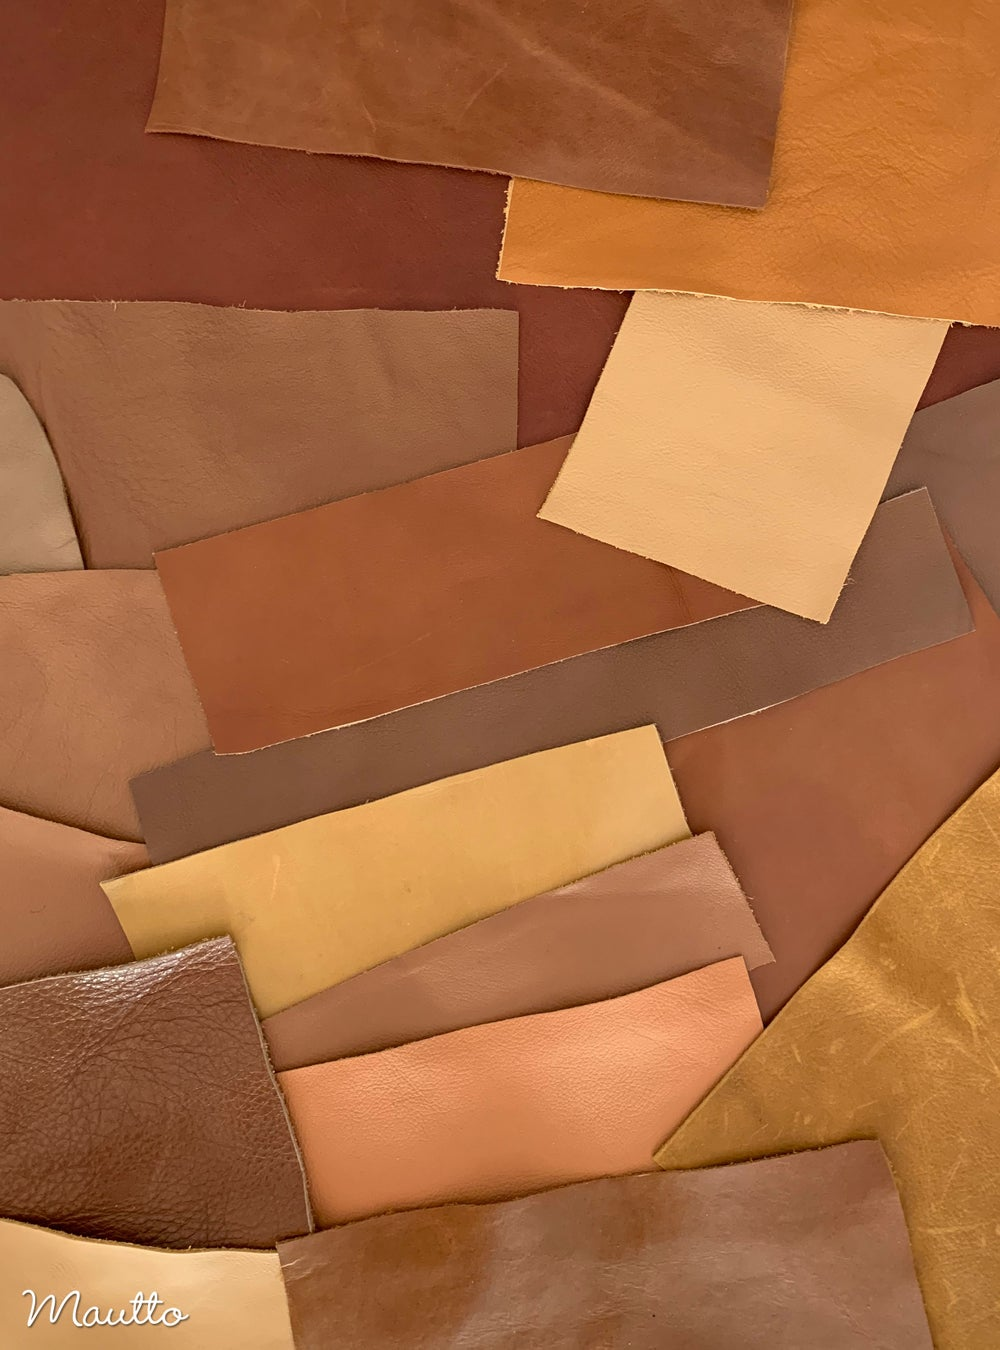 Image of Tan Leather Pieces - 1 Pound Bag of Scraps & Remnants - for Crafts, Art, DIY Projects, Jewelry